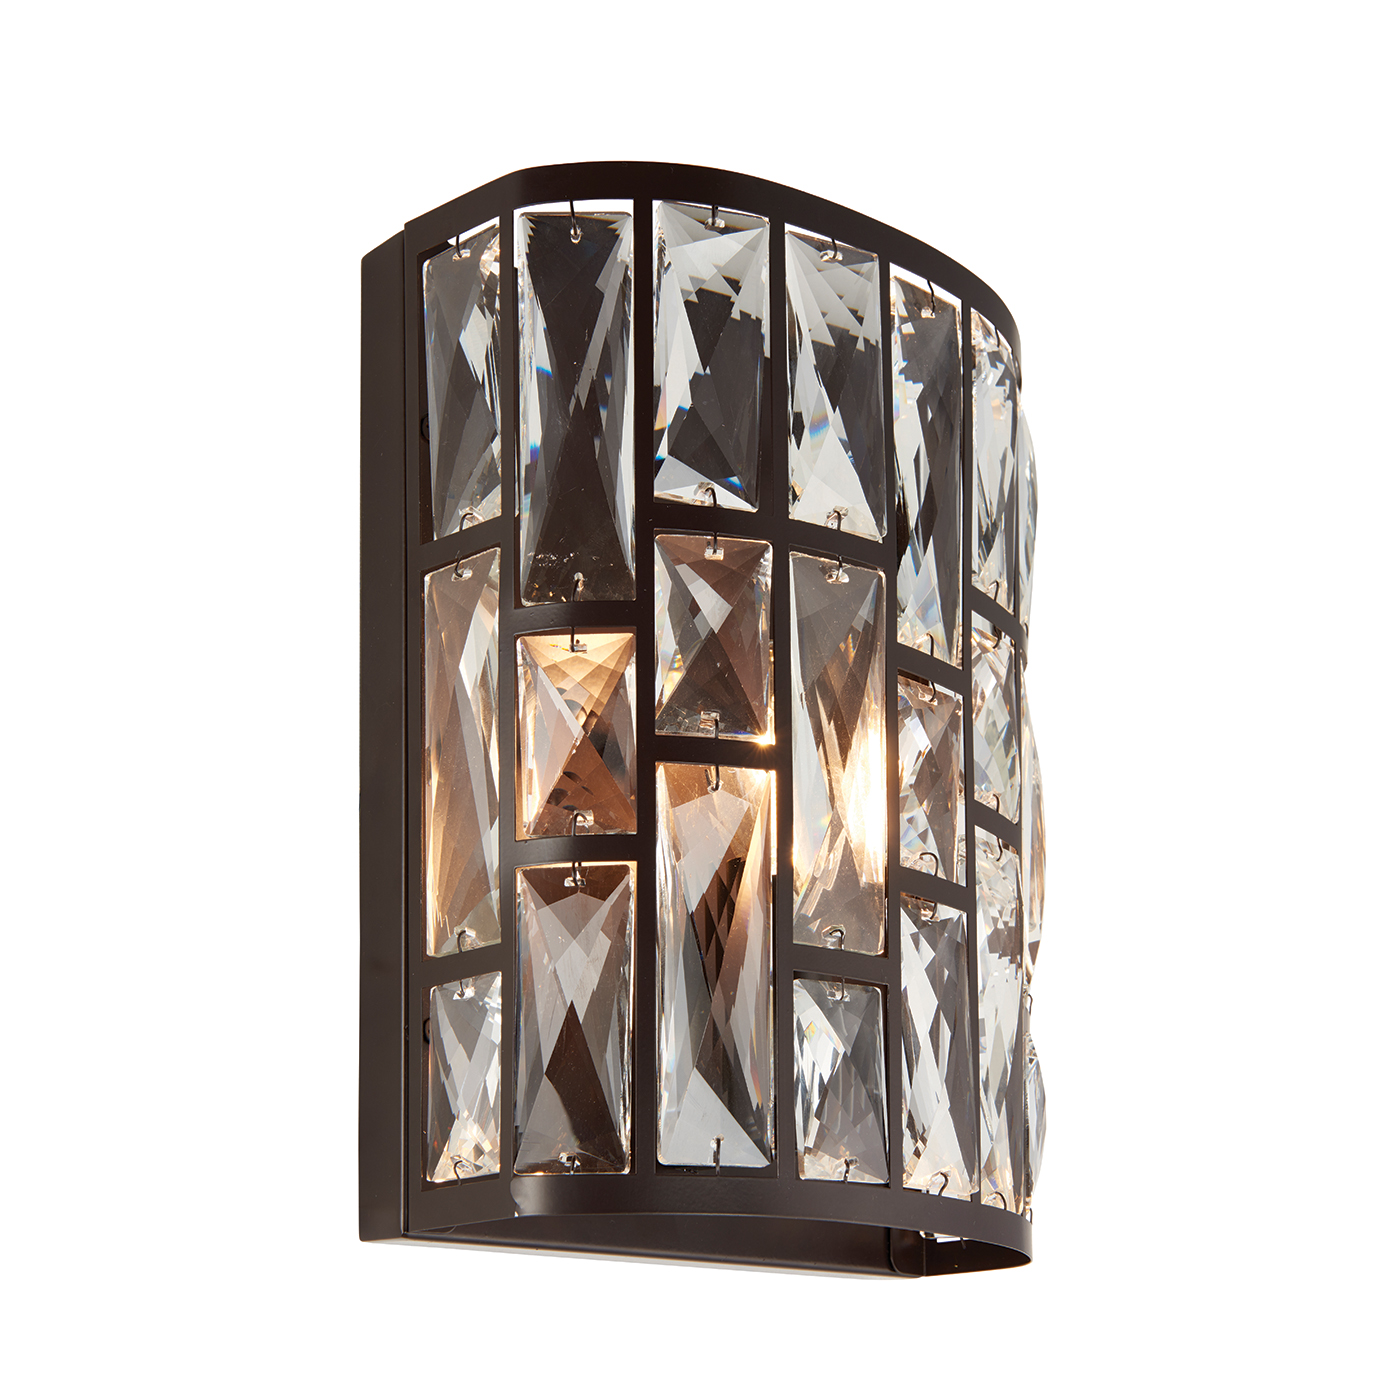 Endon Belle 1lt wall light 40W Dark bronze effect plate & clear crystal